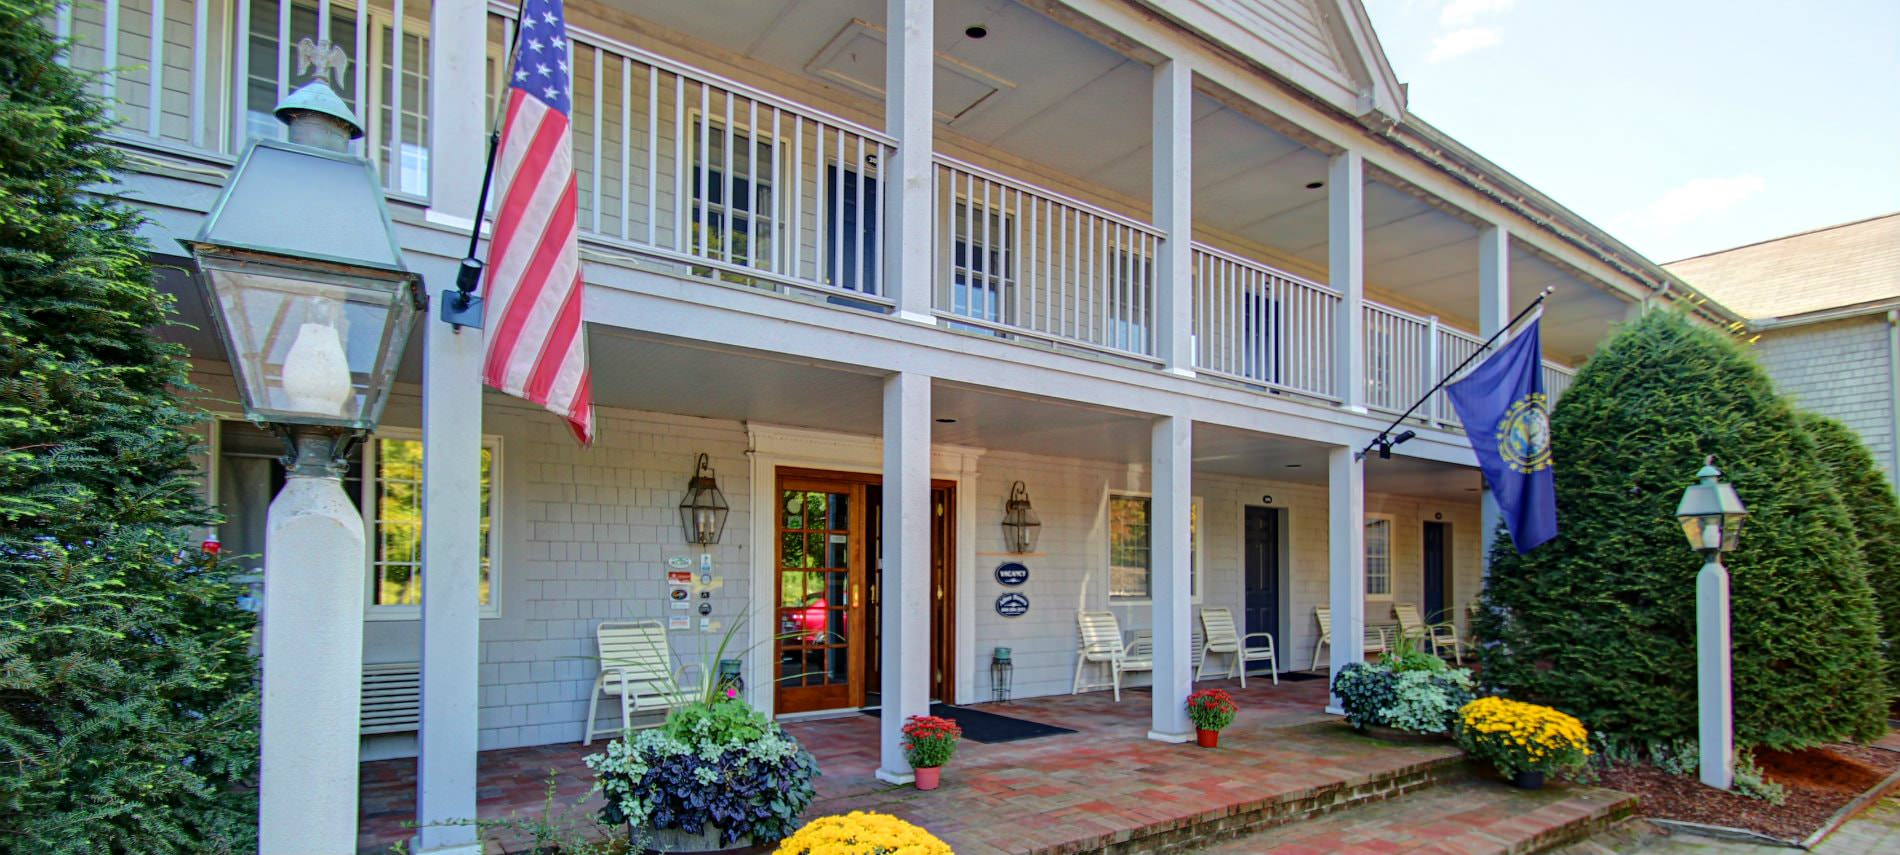 Jack Daniels Motor Inn - large building with two story covered porches, railing and posts and colorful flowers